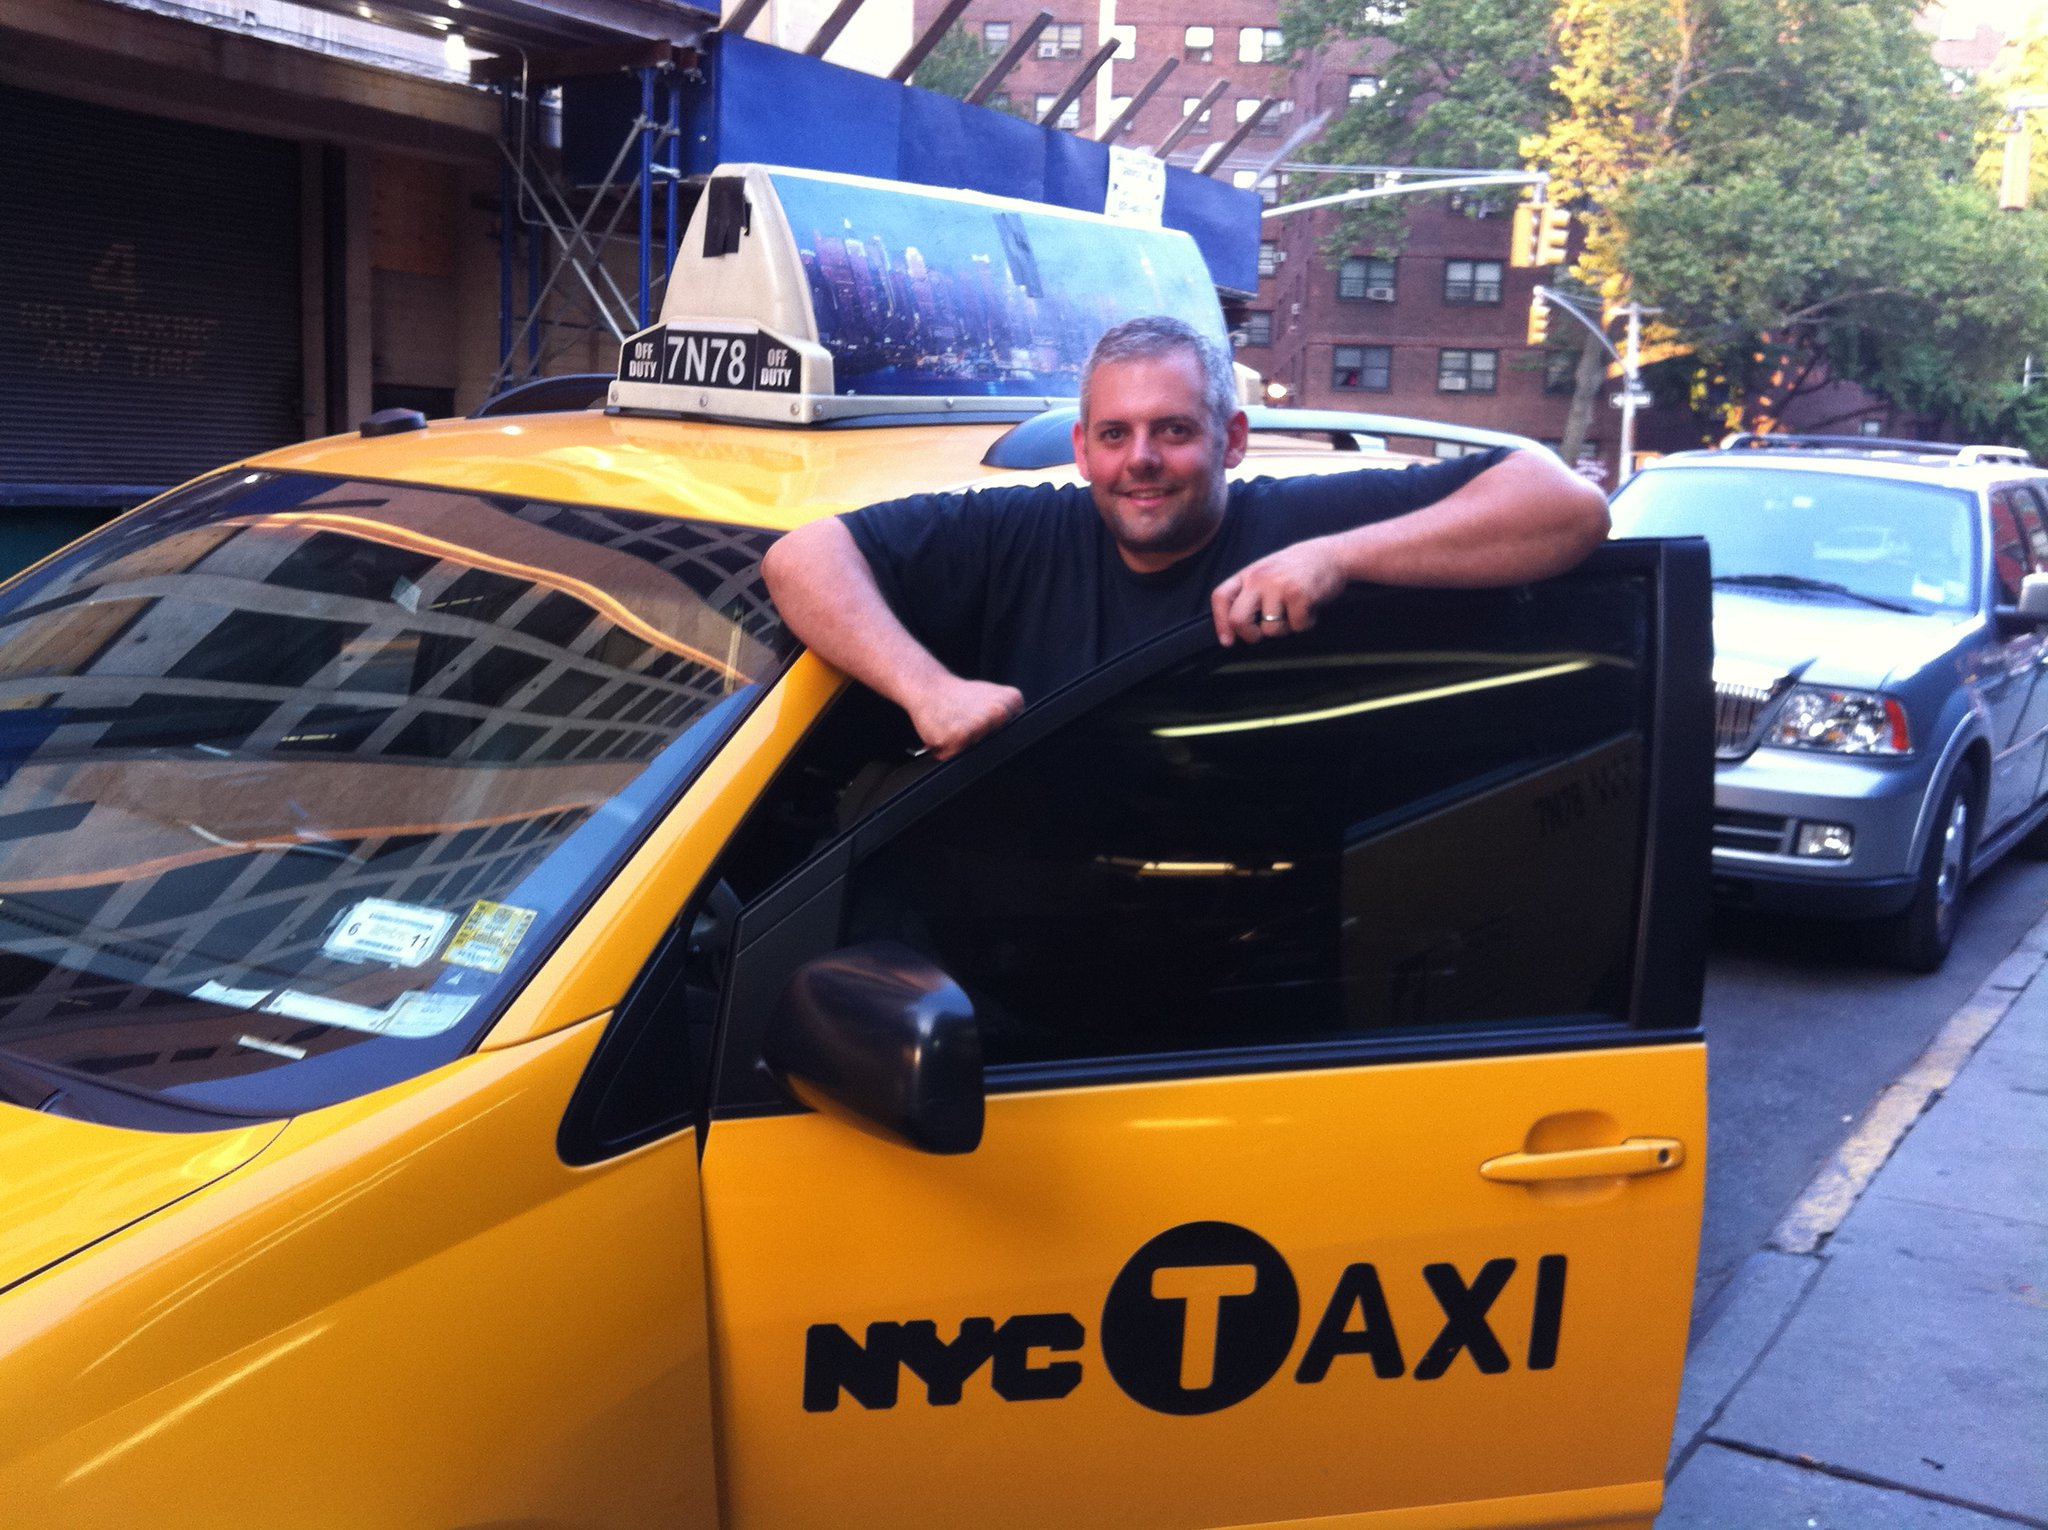 Cash Cab. Discovery channel.  I didn't get to meet Ben Bailey, but I enjoyed re-tinting the windows to make them prefect! The original tint was done on plexiglass and taped to the windows.